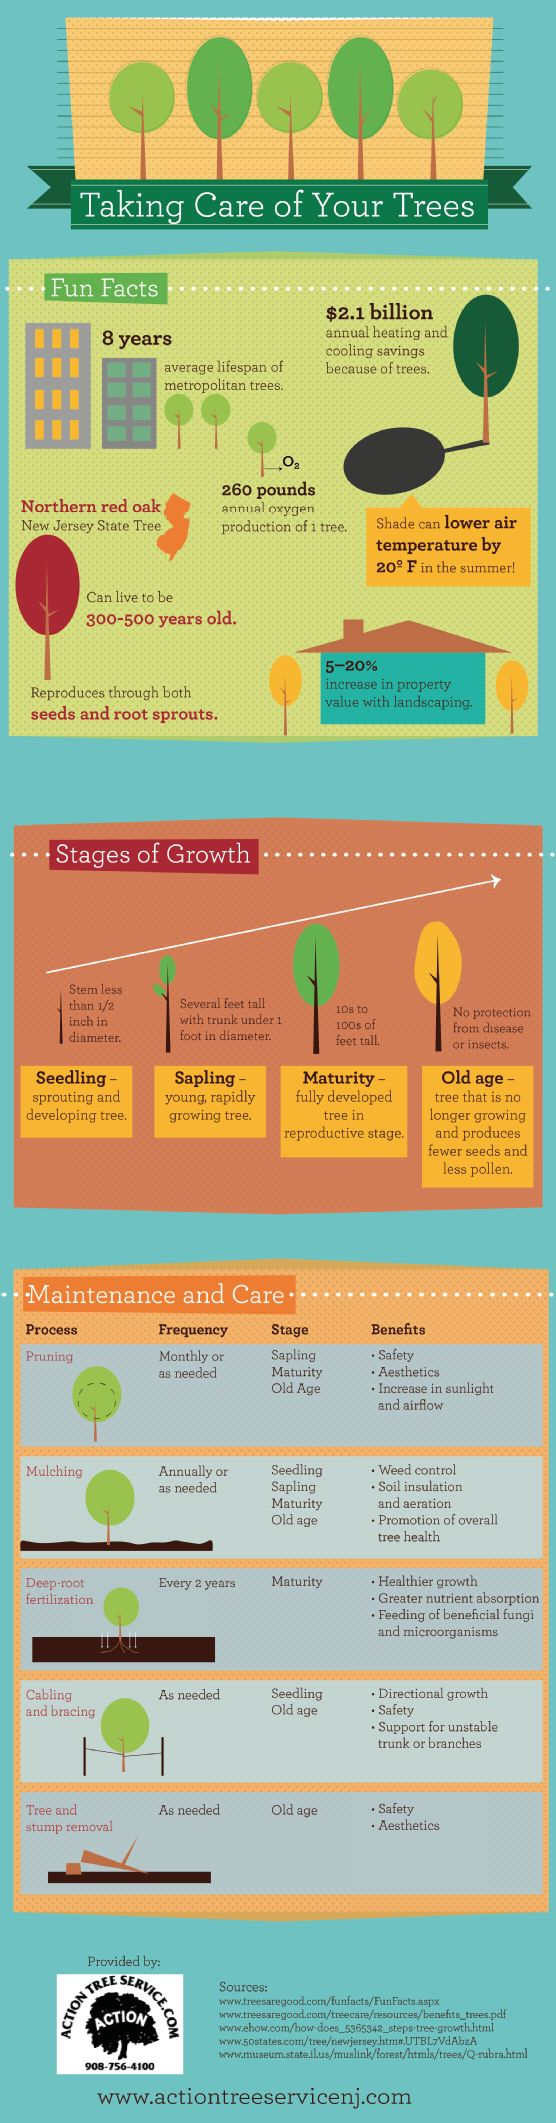 Pruning the trees in your yard results in more than just a tidy appearance—it also helps remove branches that could snap during or after a storm and damage your home. This infographic from a New Jersey tree removal service has more information. Source: http://www.actiontreeservicenj.com/663586/2013/03/14/taking-care-of-your-trees-infographic.html